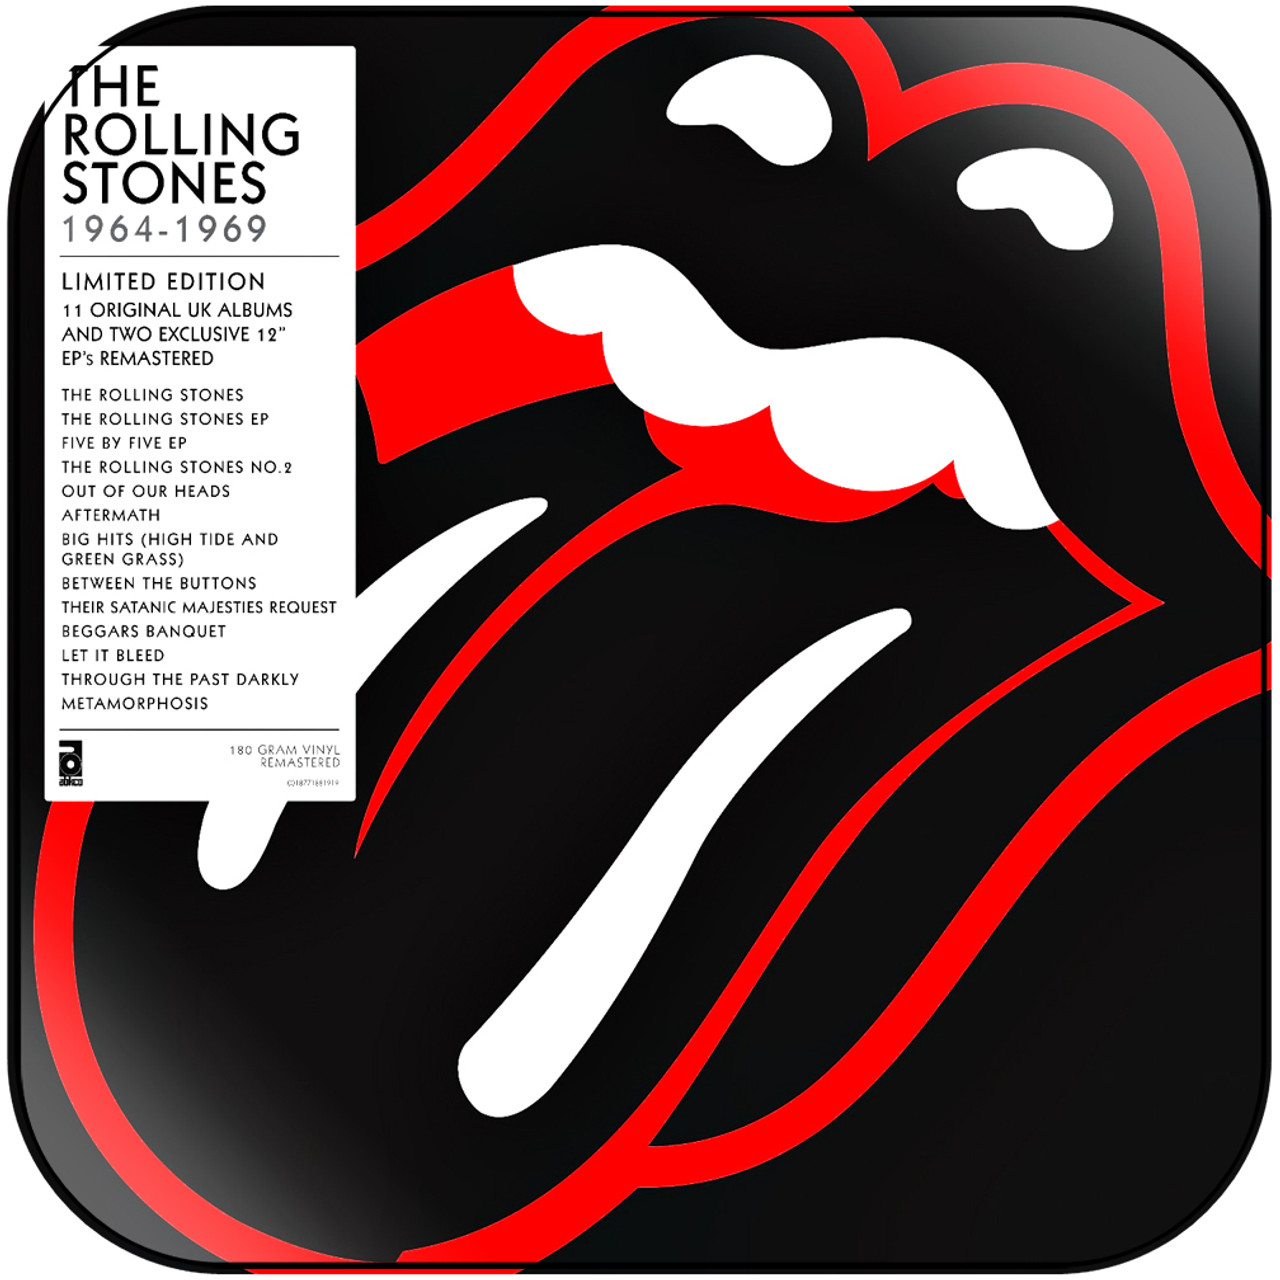 The Rolling Stones - 1964 1969 Album Cover Sticker Album Cover Sticker